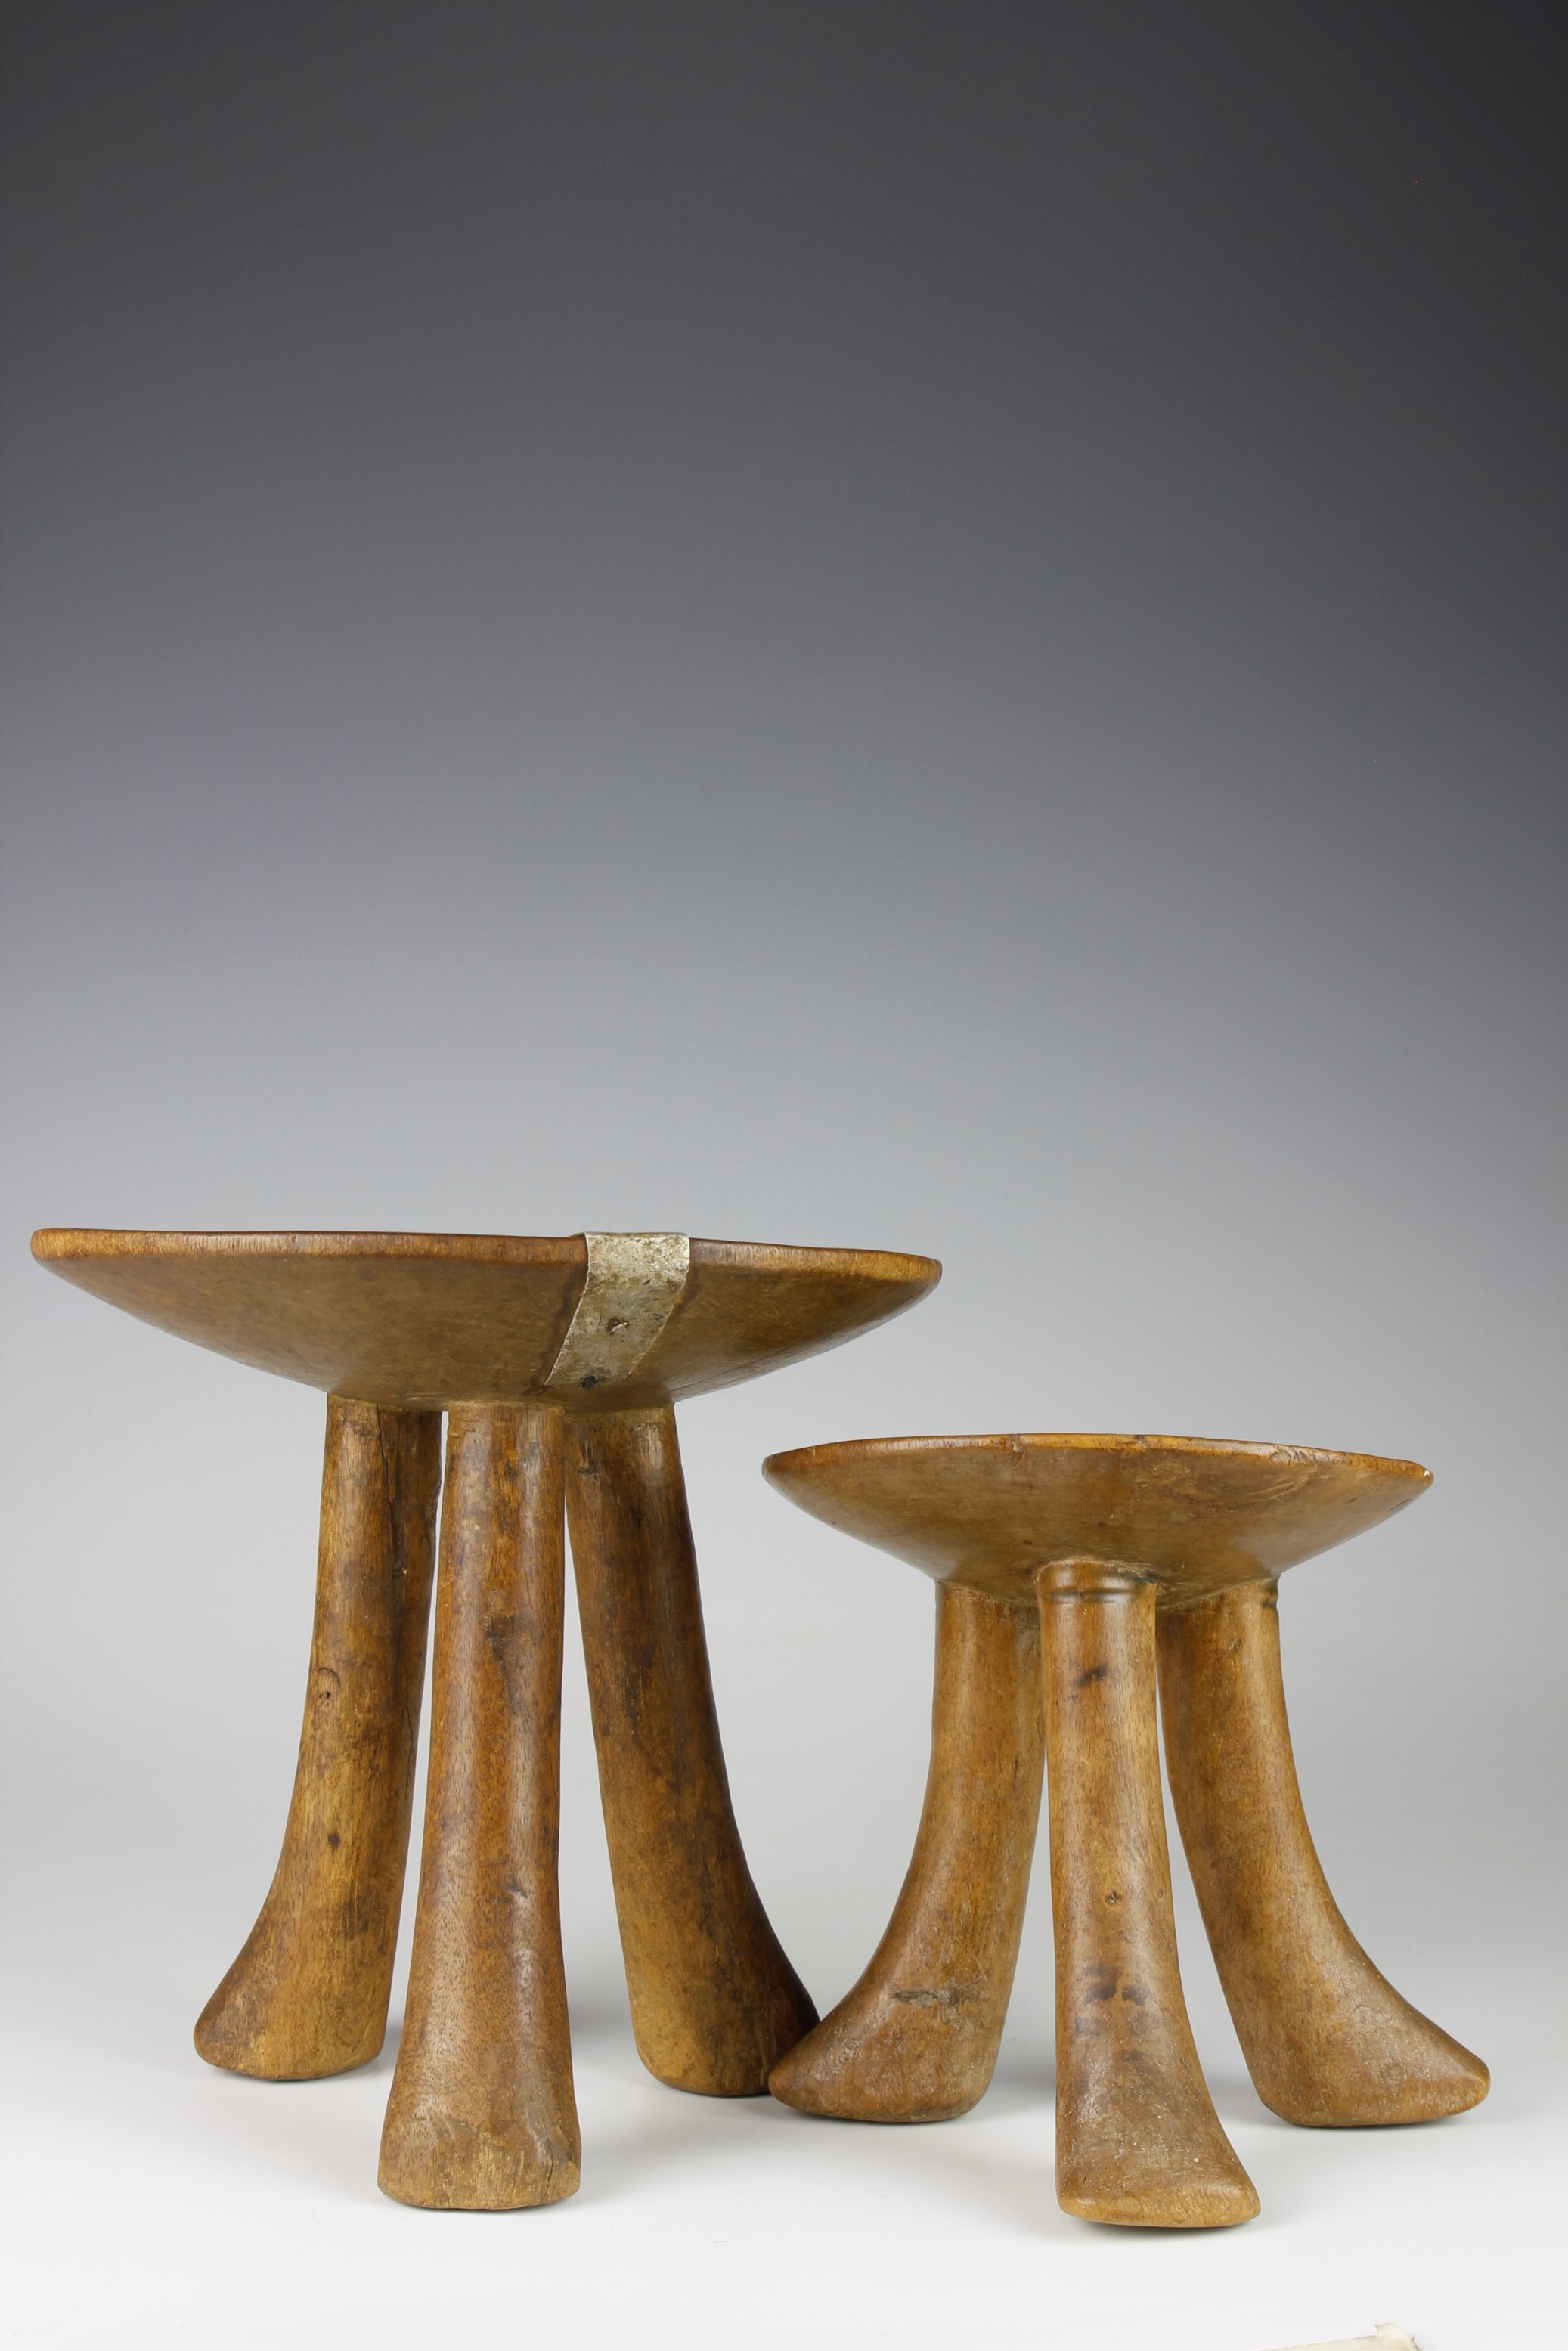 TWO SMALL ELDERS STOOLS